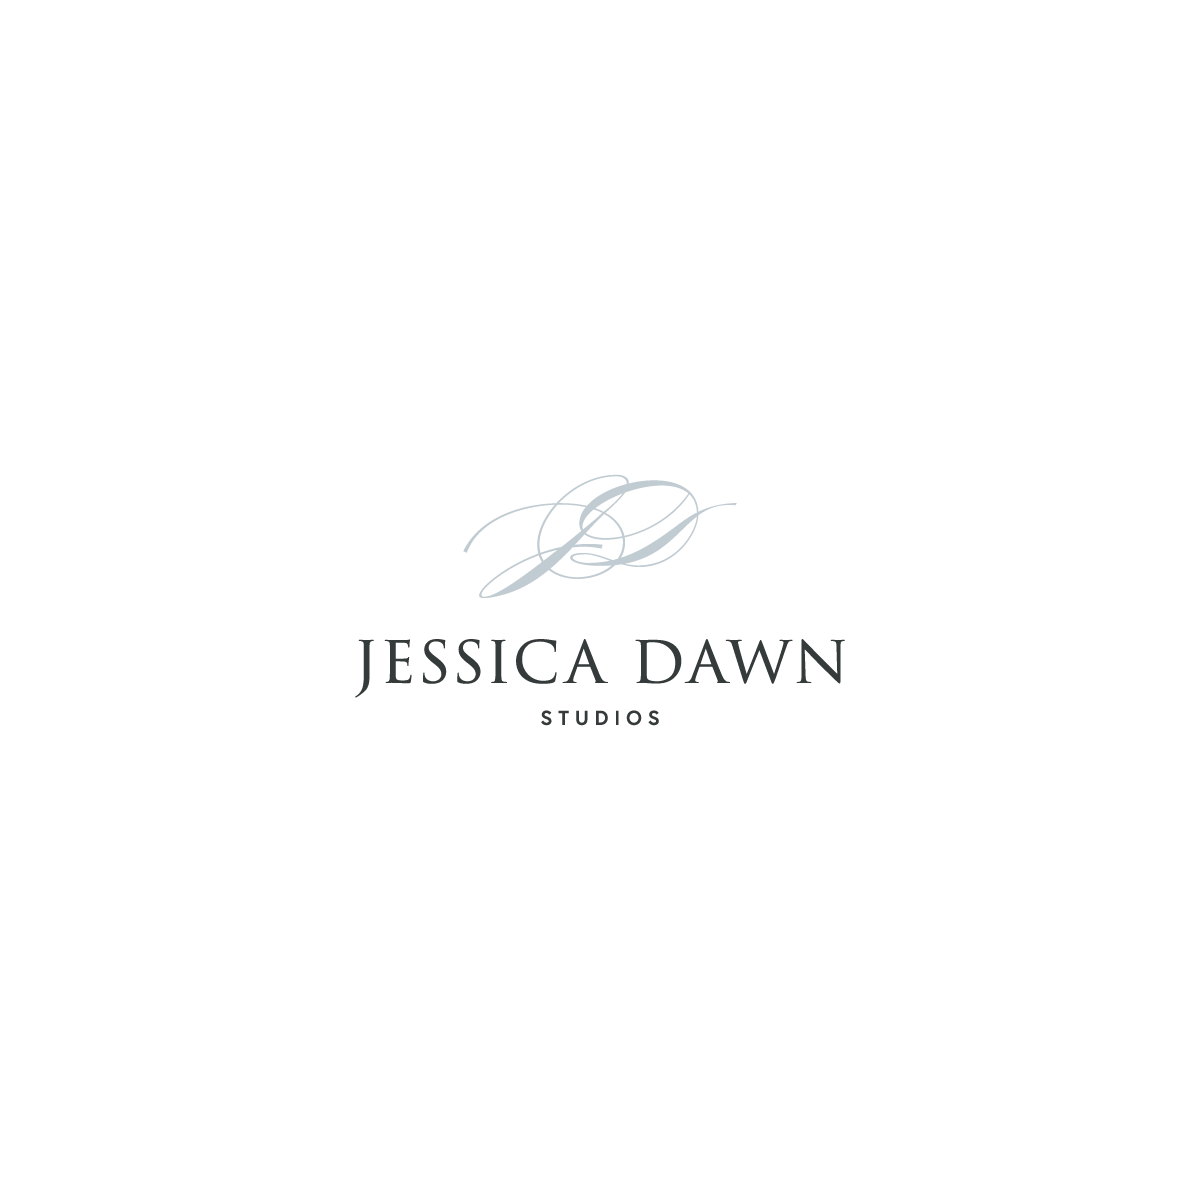 Logo design for Jessica Dawn Studios by Rachel Cottrell of The Bloom Design Company | #graphicdesigner #branddesign #weddingphotographer #romanticweddingphotos #modernbrand #moodboard #photogbranding #branding #familyphotographer #creativebusiness #mycreativebiz #womeninbusiness #bossbabe #girlboss